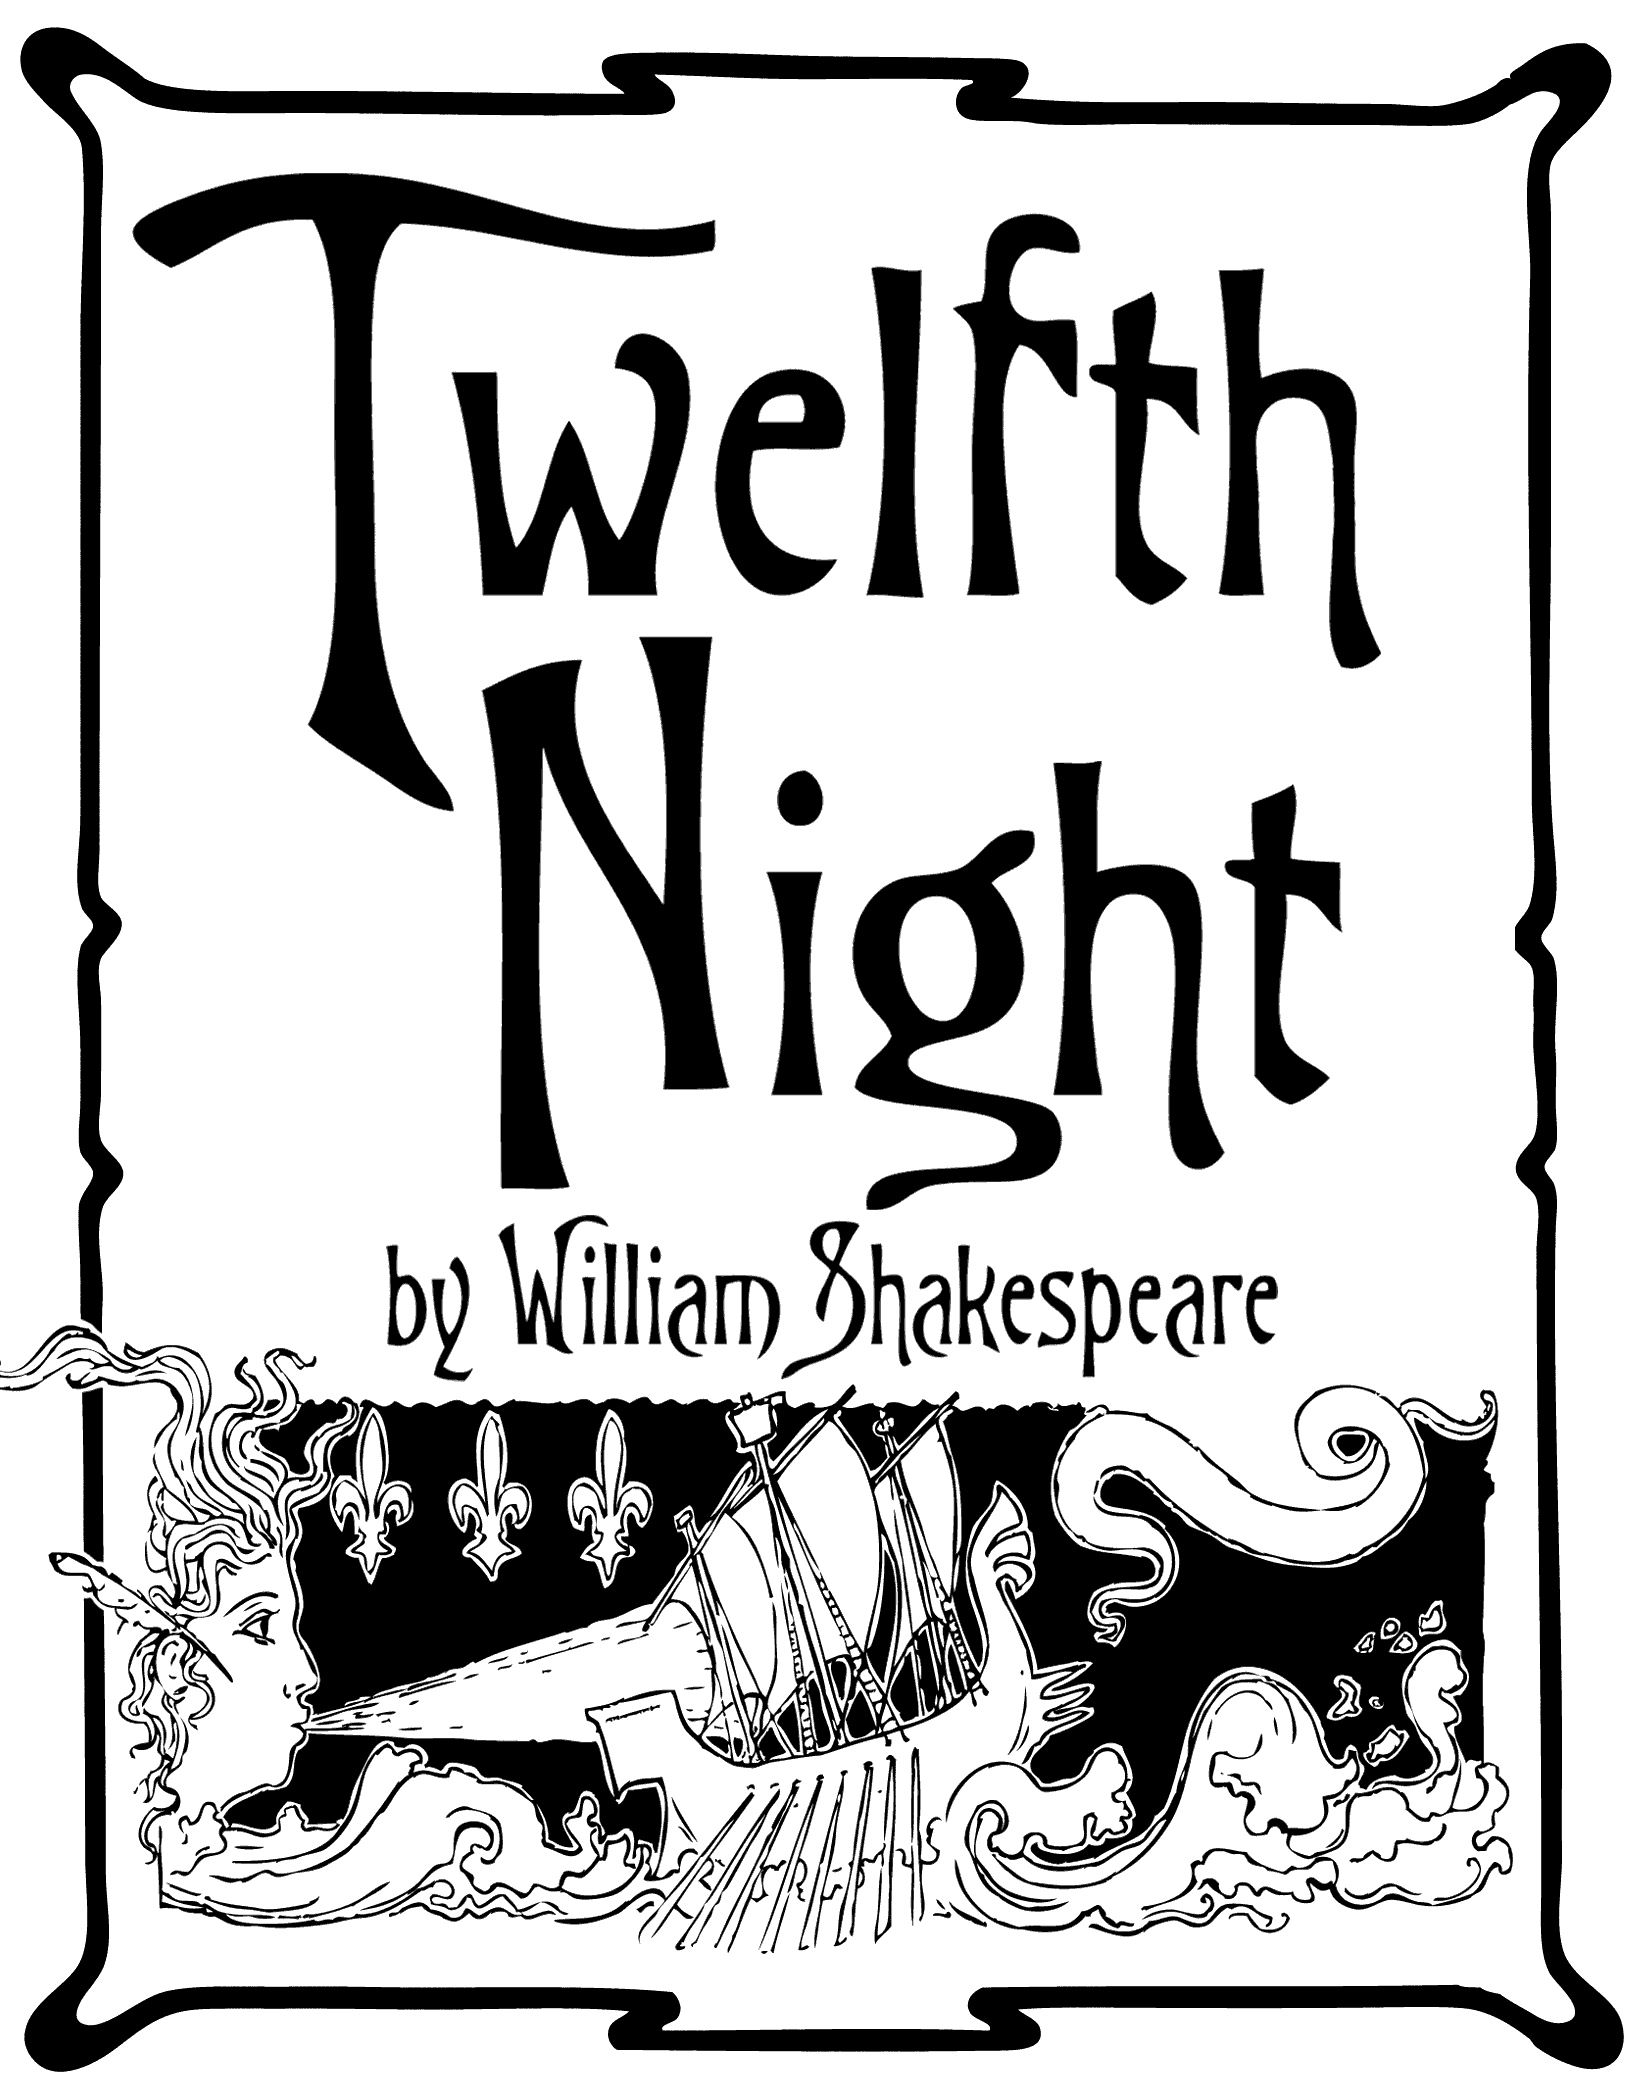 """an analysis of the character of olivia in shakespeares play twelfth night Olivia's sadness and ardent commitment to keeping that sadness """"fresh"""" in her """"remembrance"""" can be seen as a pose of melancholy like orsino who affects the tropes of love-sickness, olivia plays the role of melancholy."""